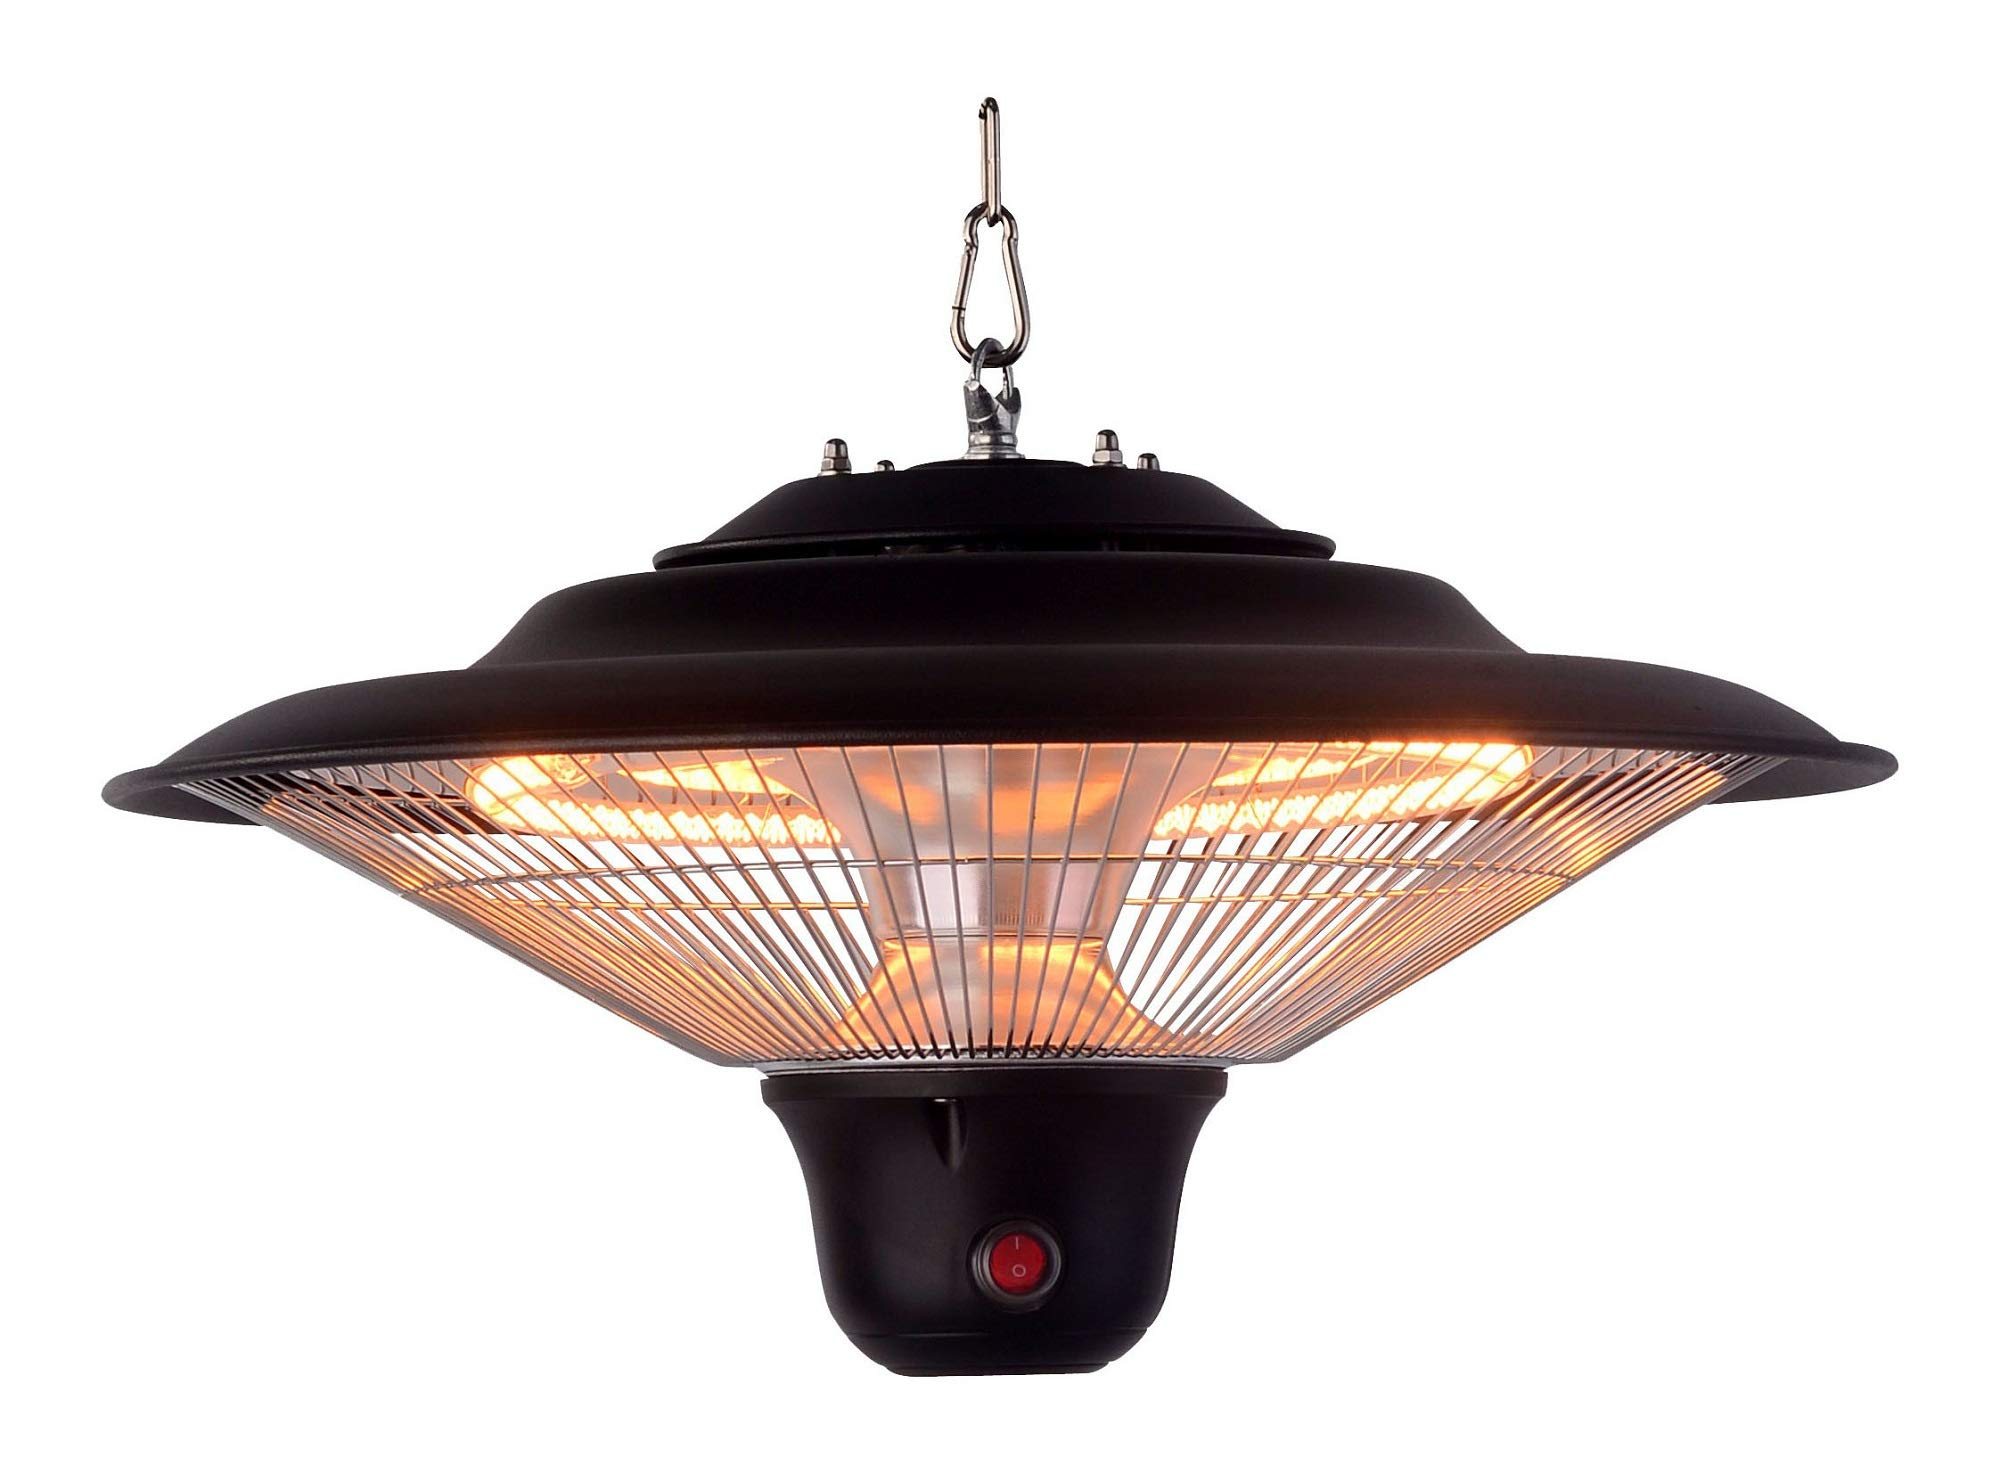 Optimus PHE-1500BR Garage-Outdoor Hanging Infrared Heater with Remote